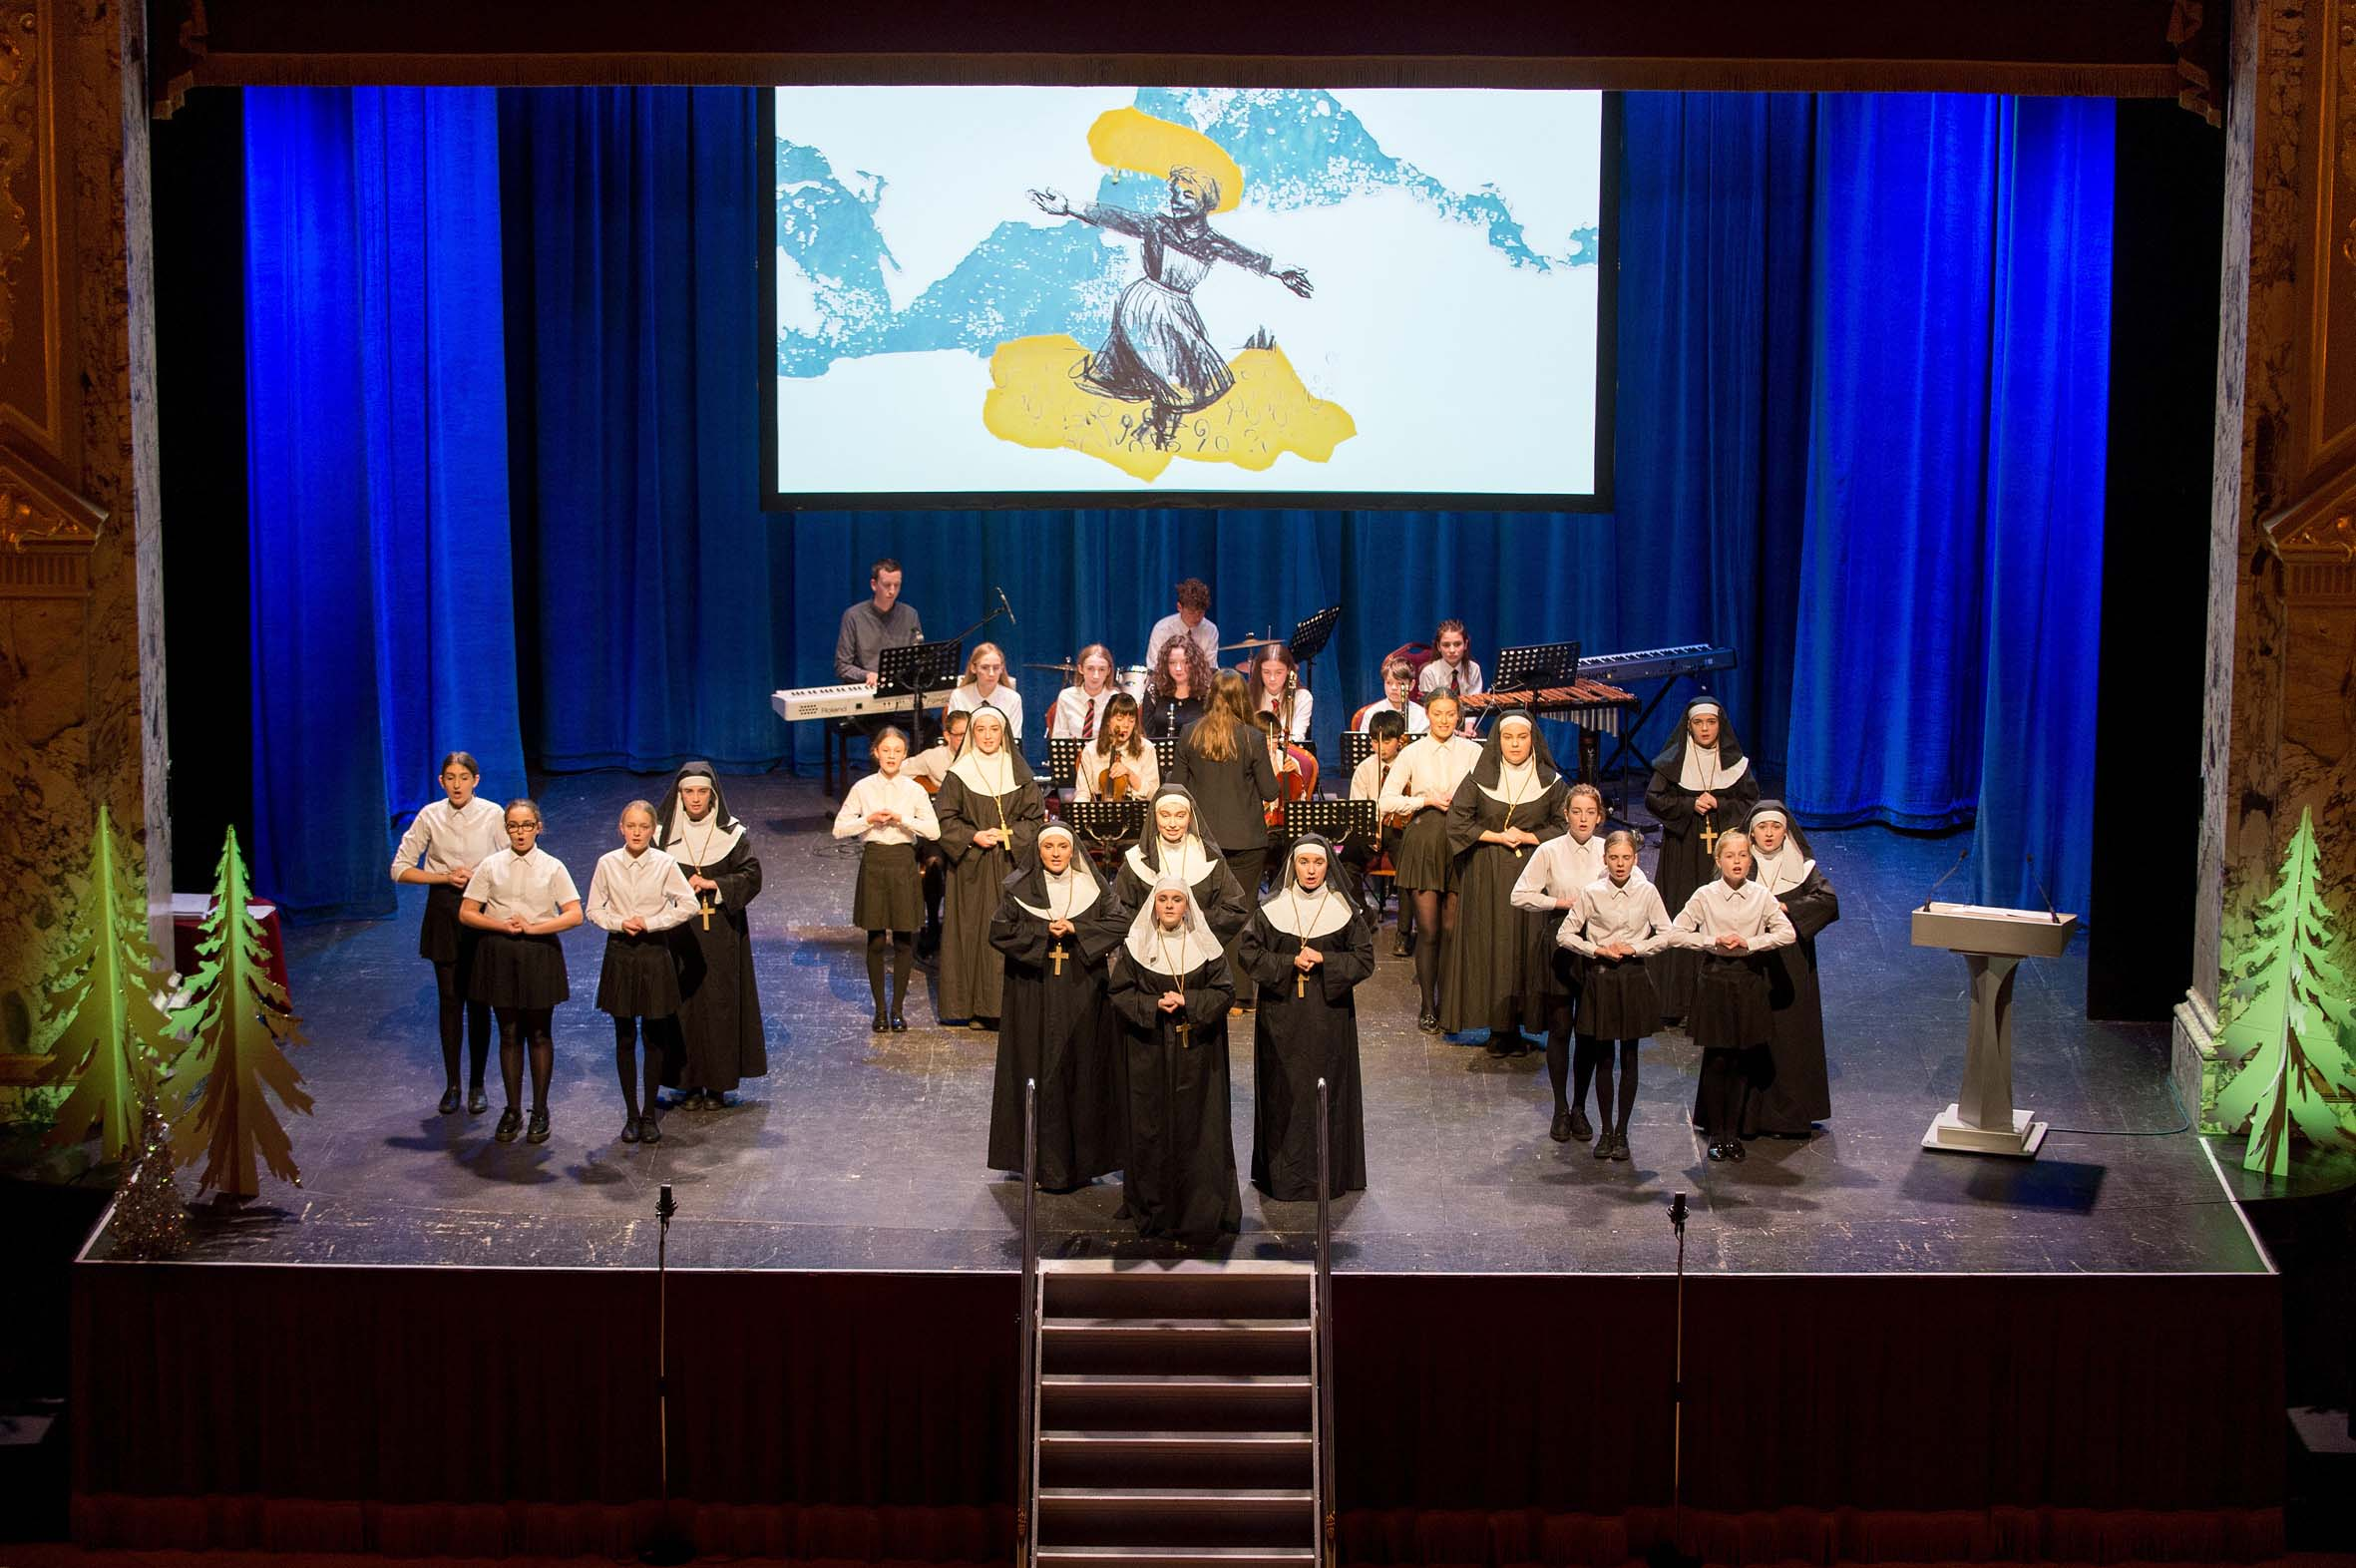 6. Extract from the forthcoming performance of the Sound of Music Harrogate Grammar